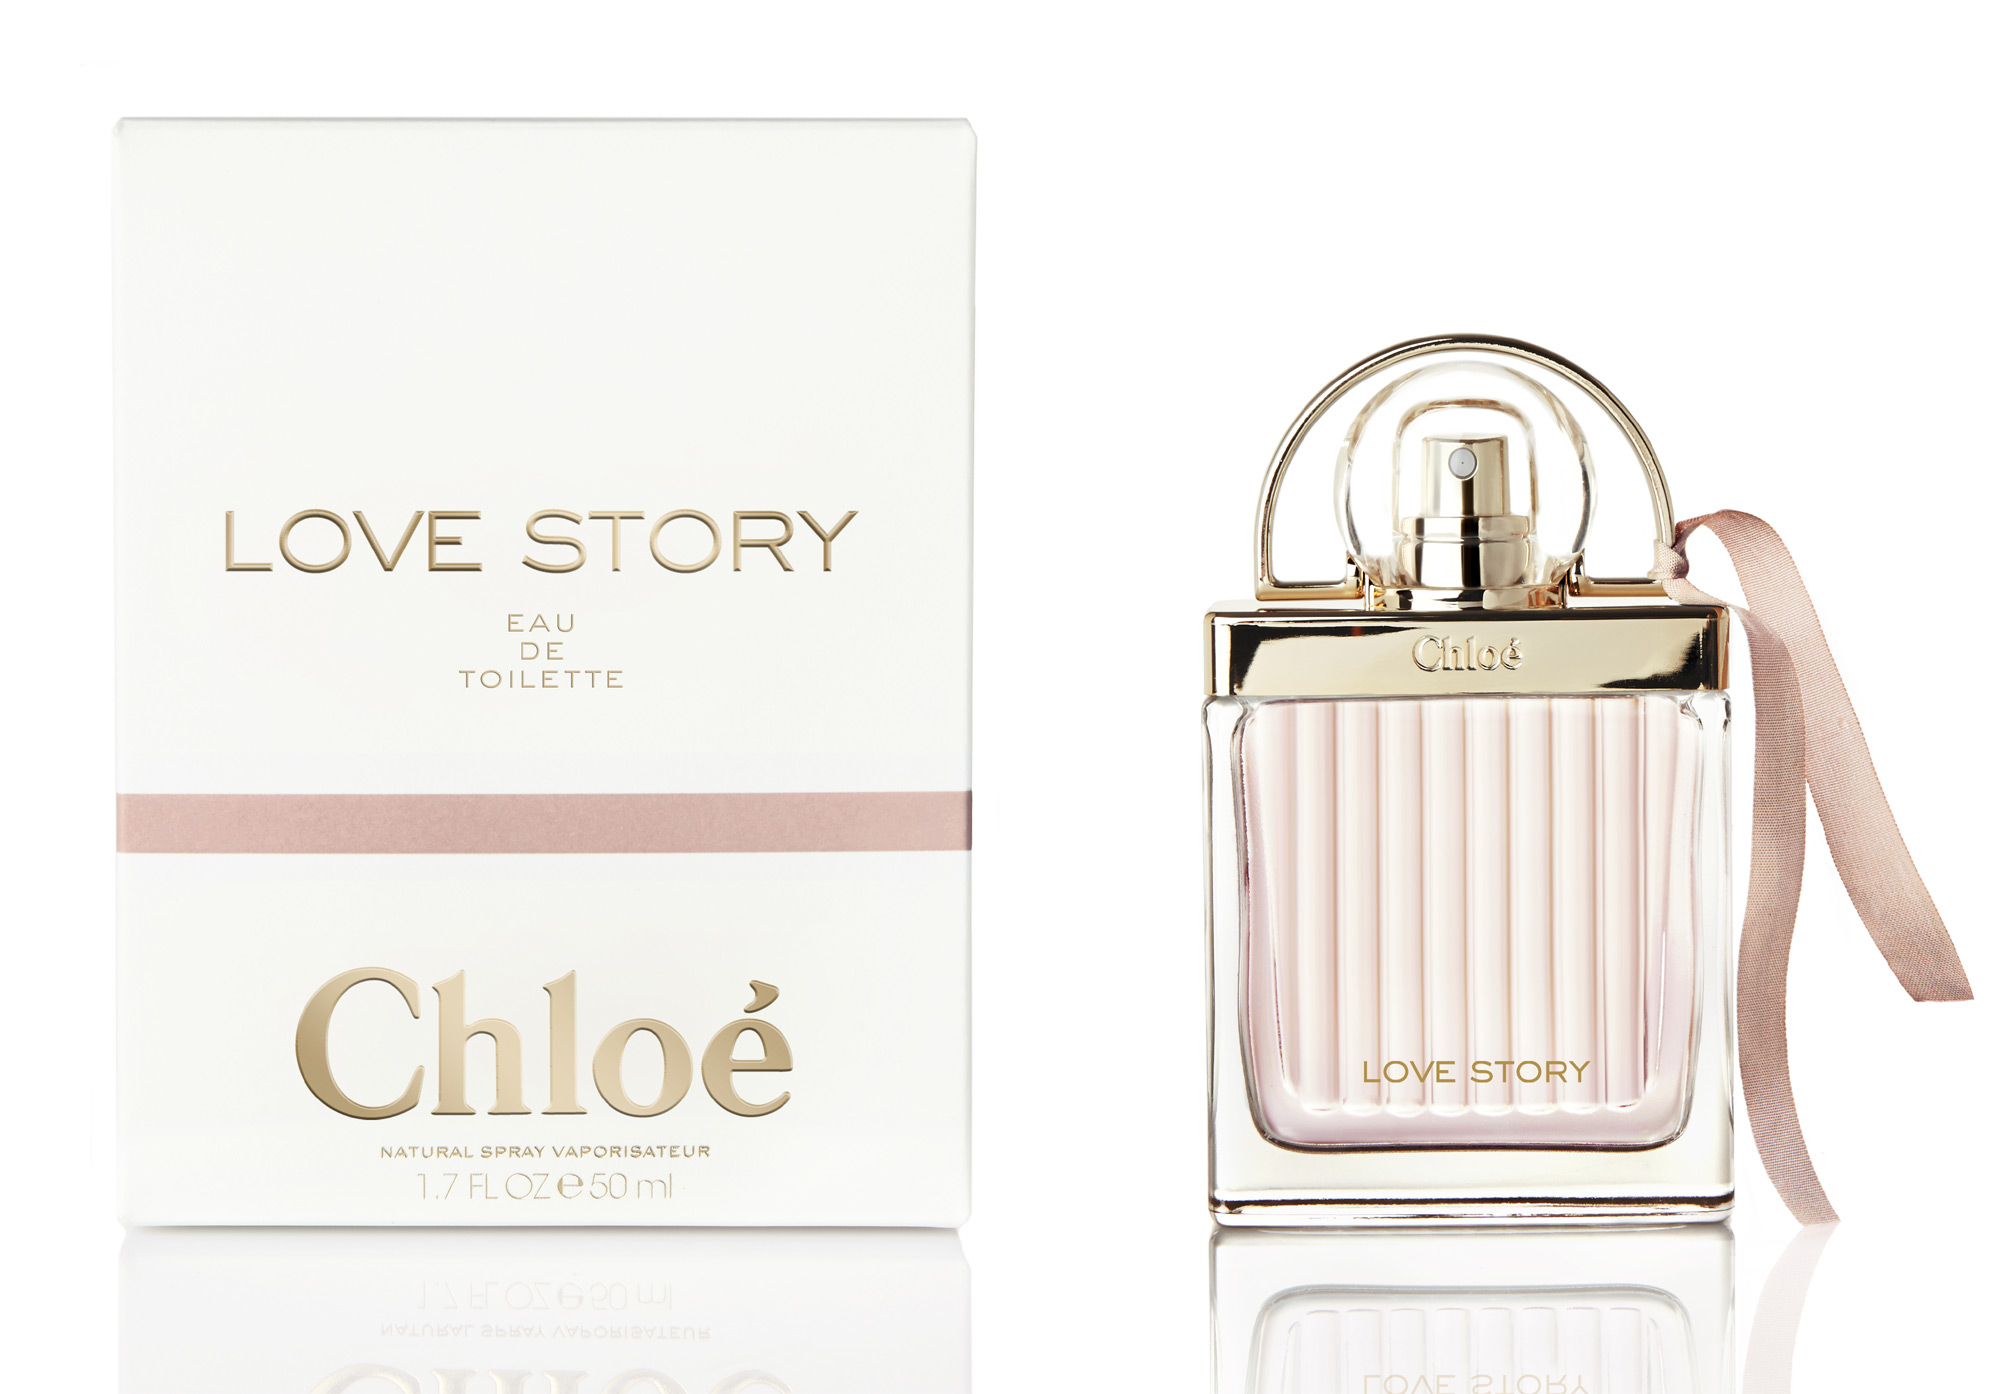 love story eau de toilette chloe parfum ein neues parfum f r frauen 2016. Black Bedroom Furniture Sets. Home Design Ideas